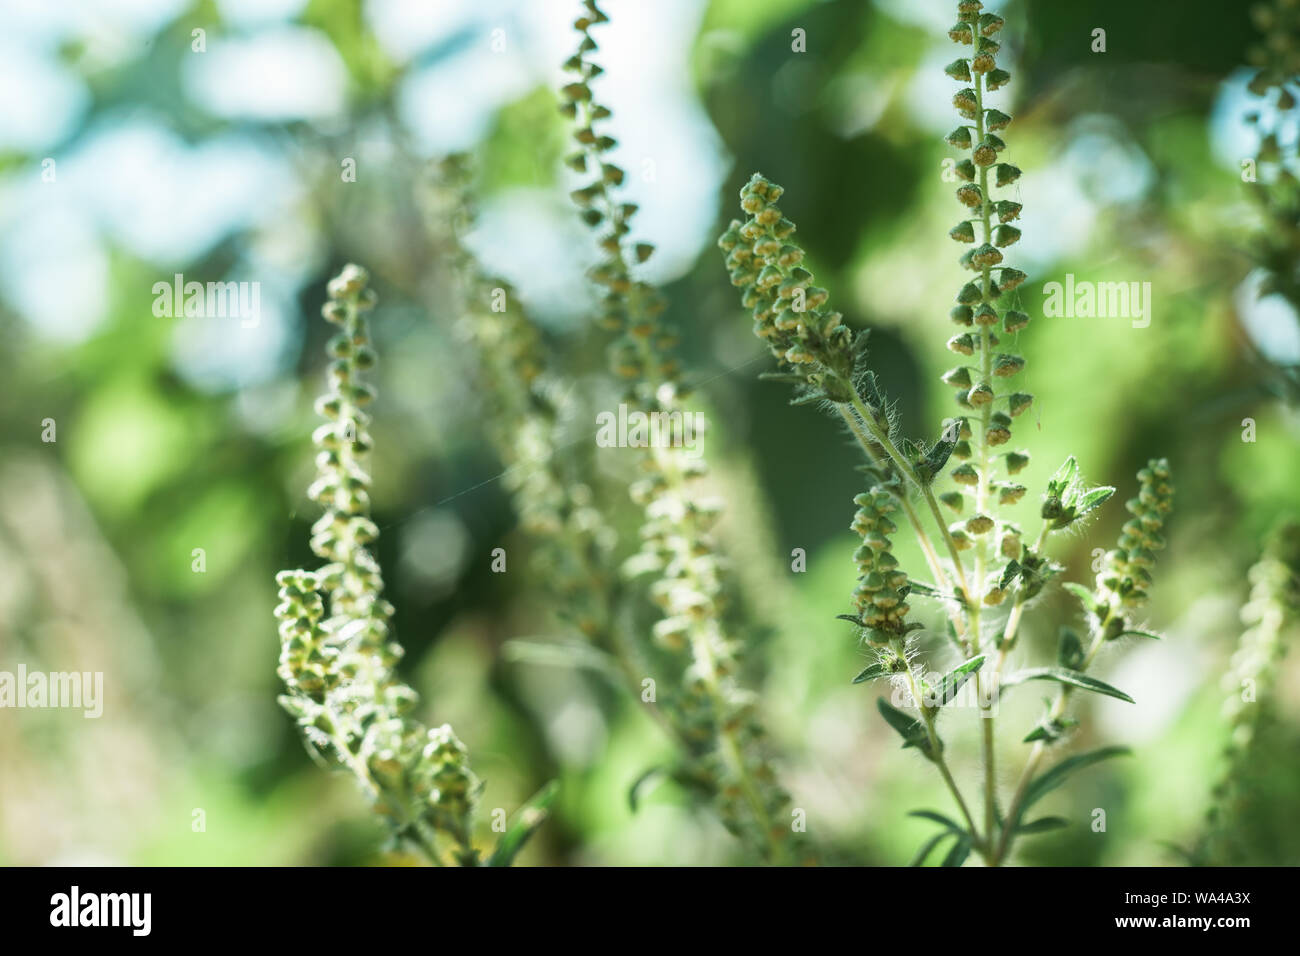 Close up ragweed on a garden. Macro view. Stock Photo